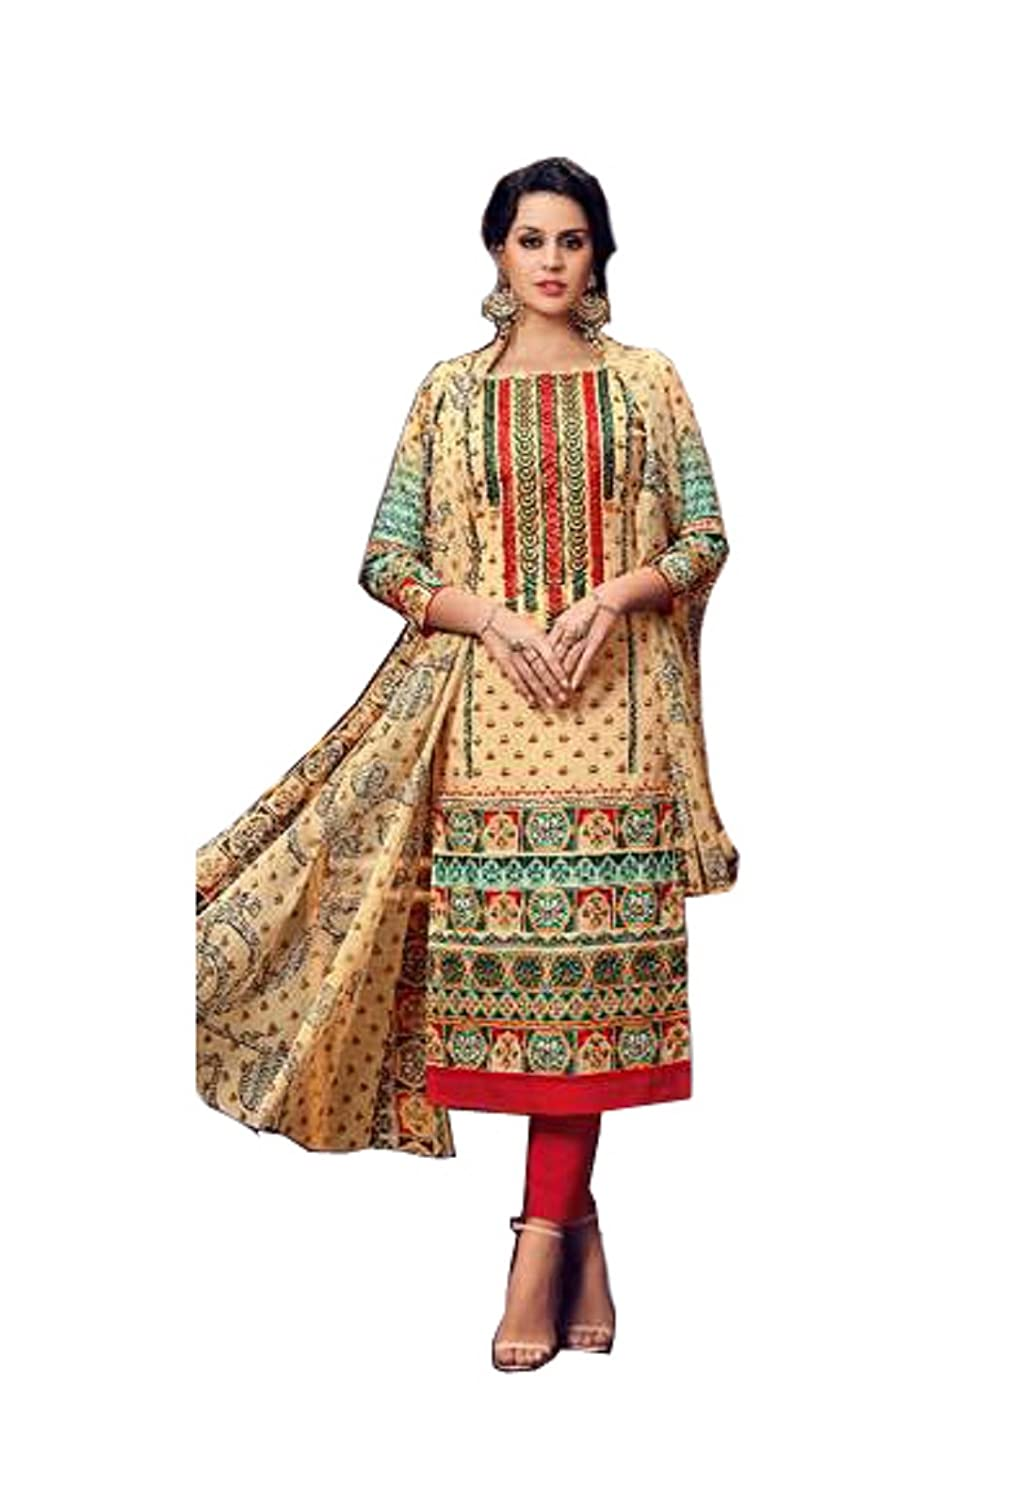 275173fa5a Madeesh Pakistani Suit for Women, un stitched pakistani style dress  material, salwar suits, Cotton, Embroidery, Party Wear: Amazon.in: Clothing  & ...